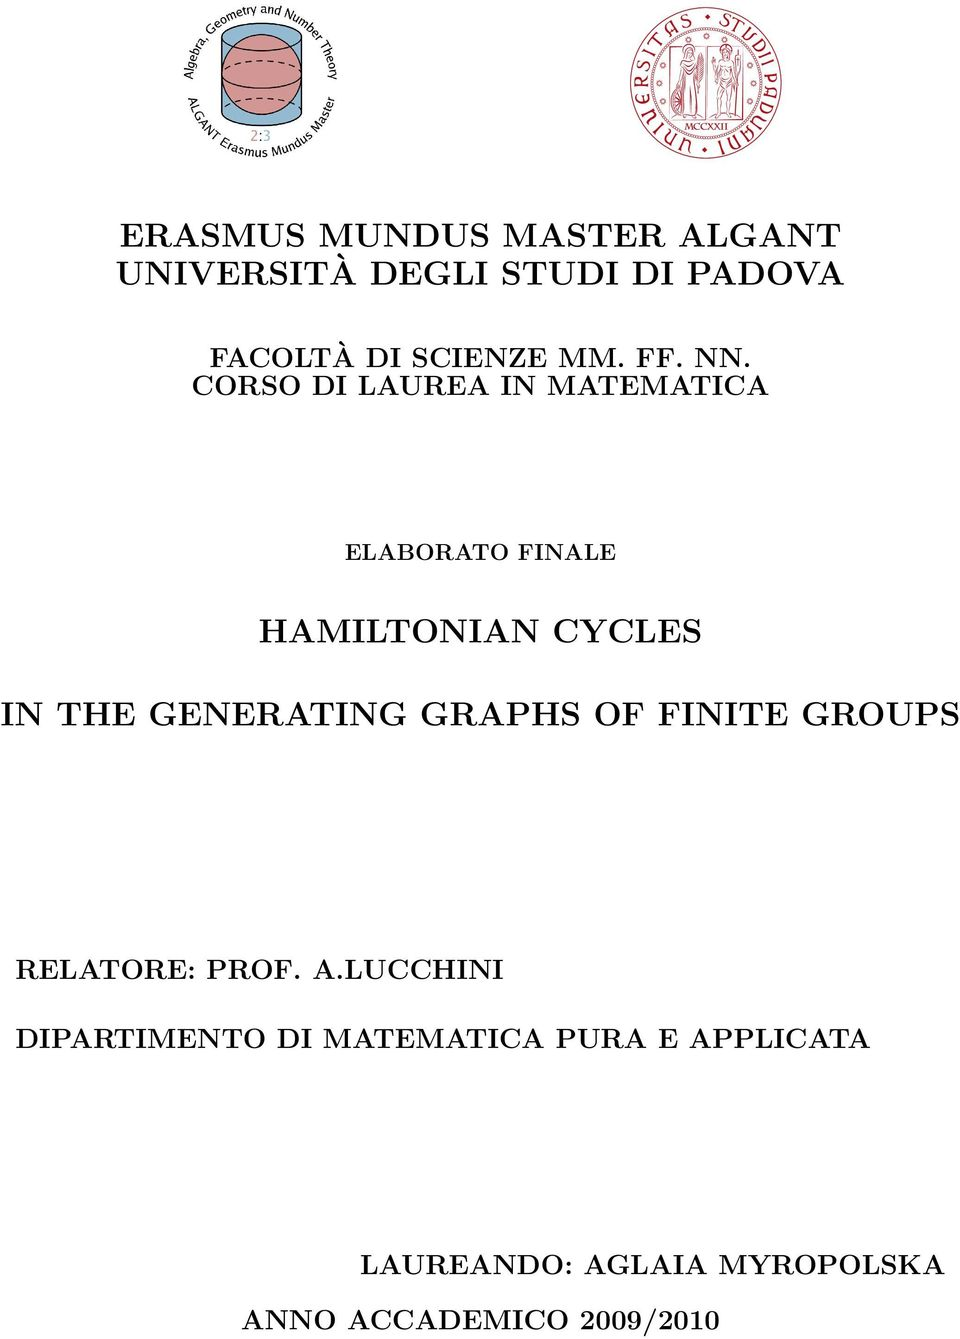 CORSO DI LAUREA IN MATEMATICA ELABORATO FINALE HAMILTONIAN CYCLES IN THE